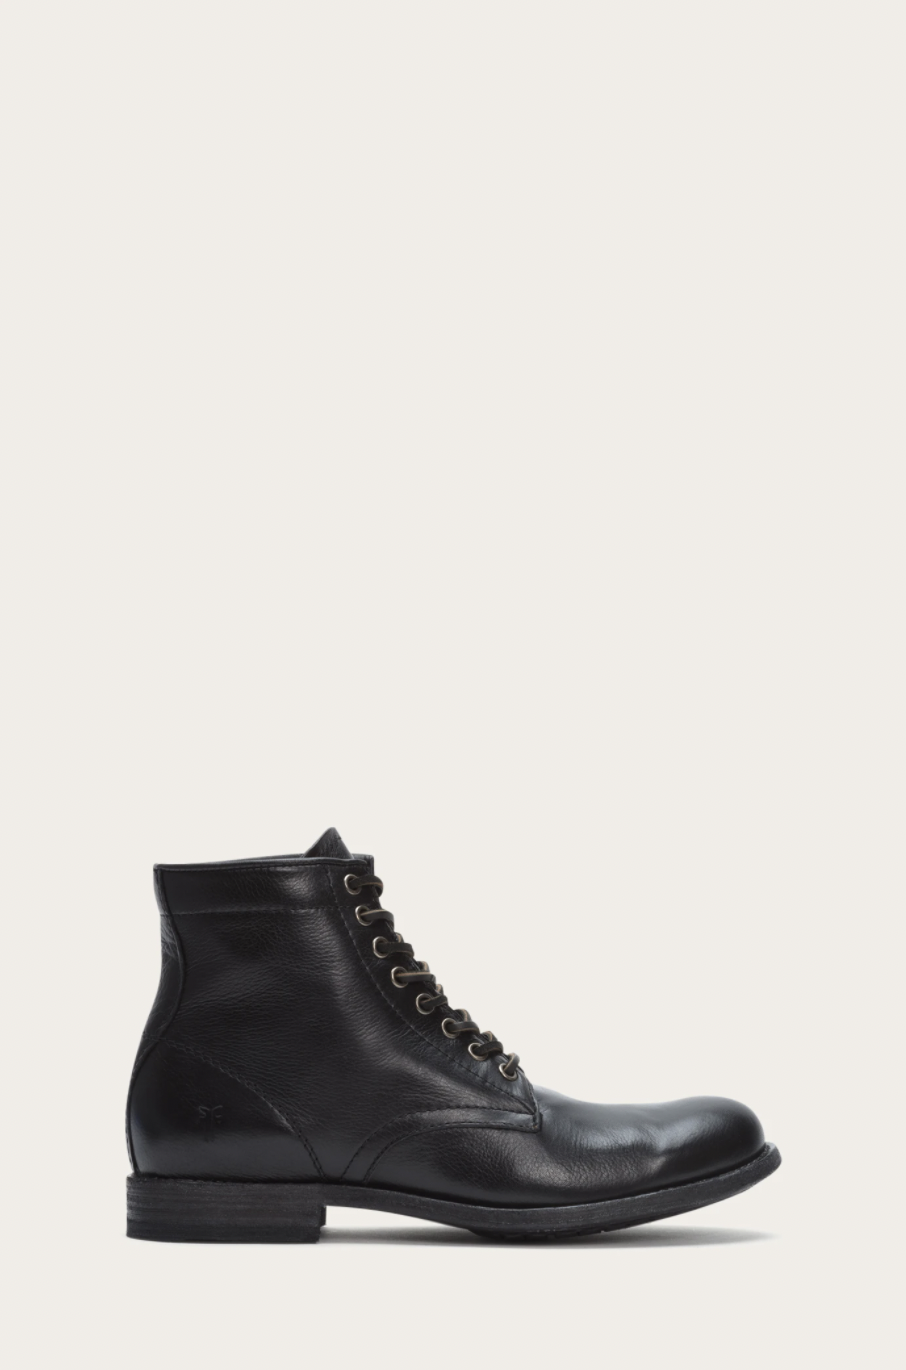 """<p><strong>Frye</strong></p><p>thefryecompany.com</p><p><strong>$328.00</strong></p><p><a href=""""https://go.redirectingat.com?id=74968X1596630&url=https%3A%2F%2Fwww.thefryecompany.com%2Fcollections%2Fmen-shoes-lace-up-boots%2Fproducts%2Ftyler-lace-up-3486070-86070-black&sref=https%3A%2F%2Fwww.esquire.com%2Fstyle%2Fmens-fashion%2Fg28186249%2Fbusiness-casual-shoes%2F"""" rel=""""nofollow noopener"""" target=""""_blank"""" data-ylk=""""slk:Shop Now"""" class=""""link rapid-noclick-resp"""">Shop Now</a></p><p>When in doubt, leather boots are a business-casual staple. Black lace-ups are great for wearing with black anything—jeans, chinos, suits, what have you. </p>"""